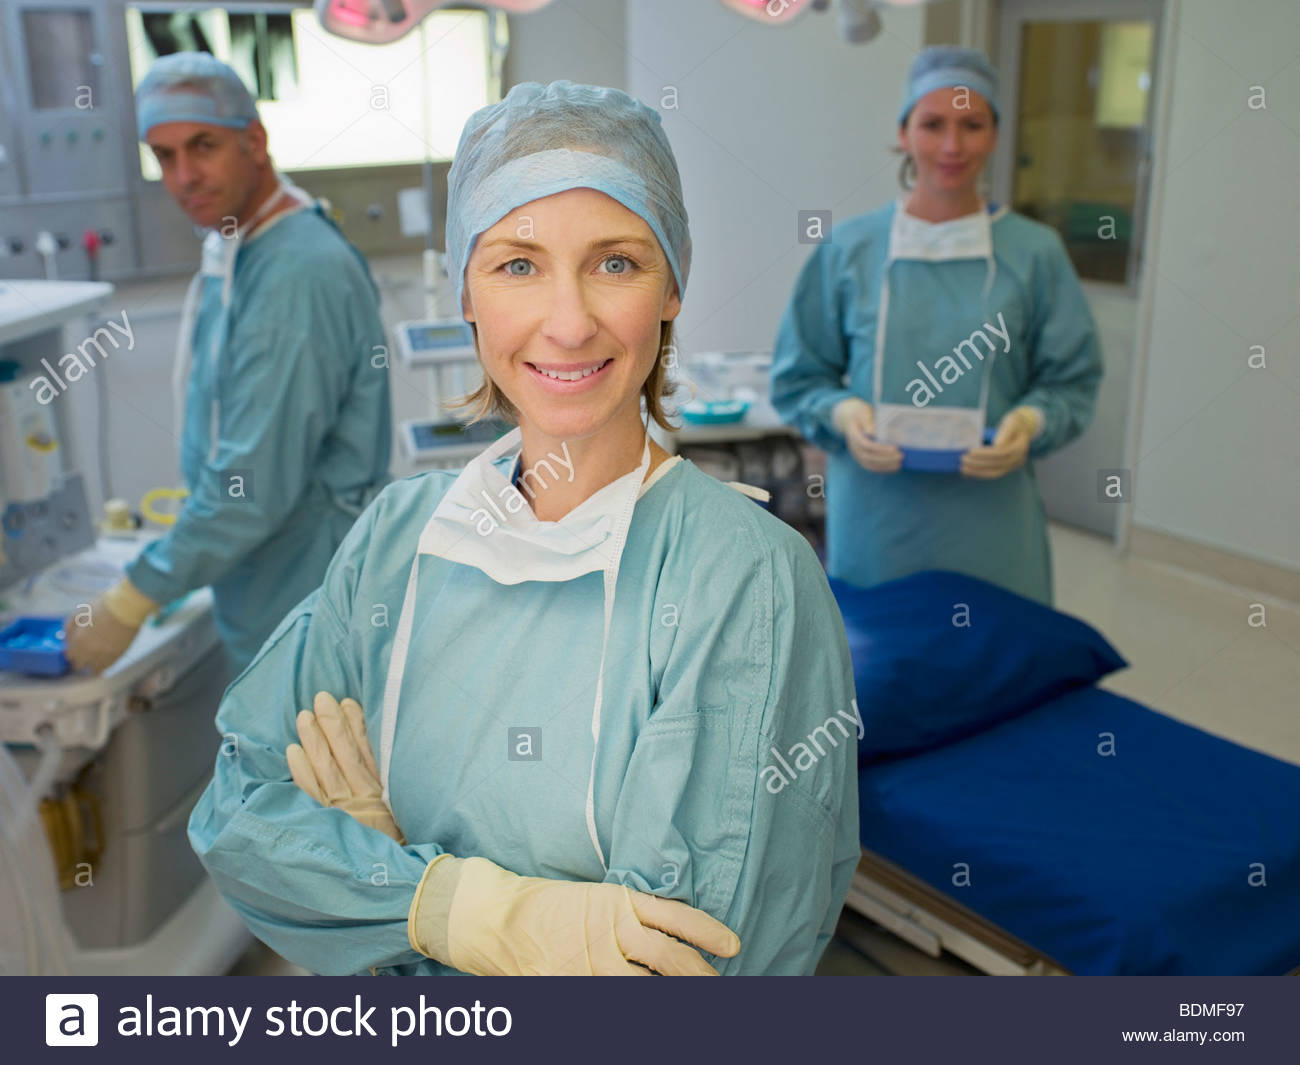 Surgeons preparing for surgery in operating room - Stock Image